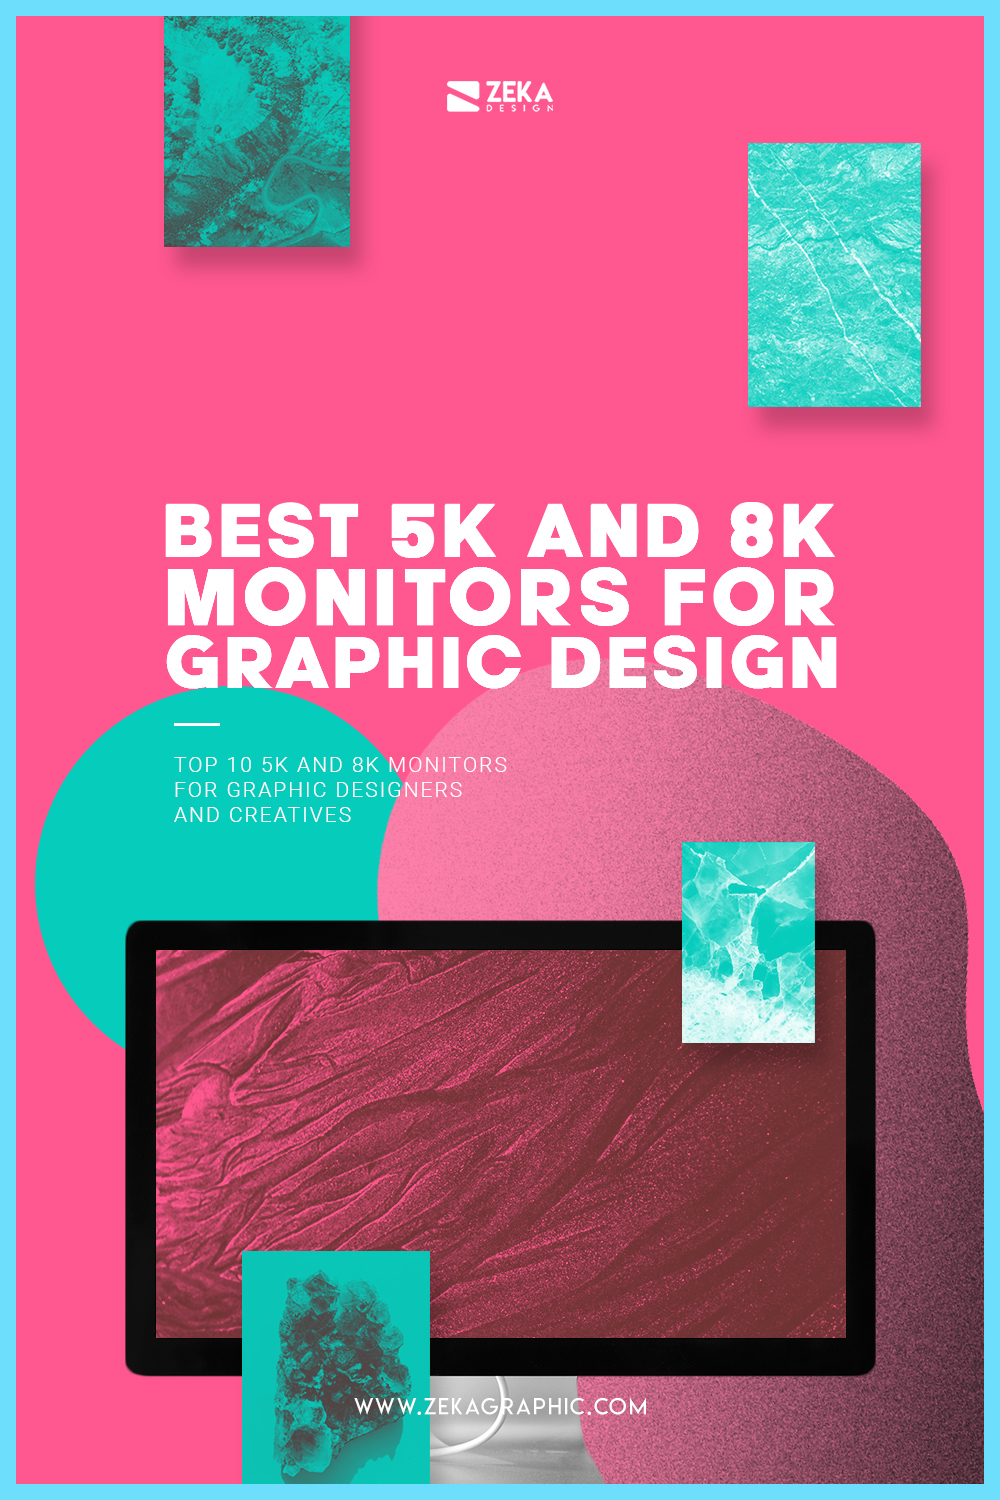 TOP 10 5K Monitor for graphic design and logo design